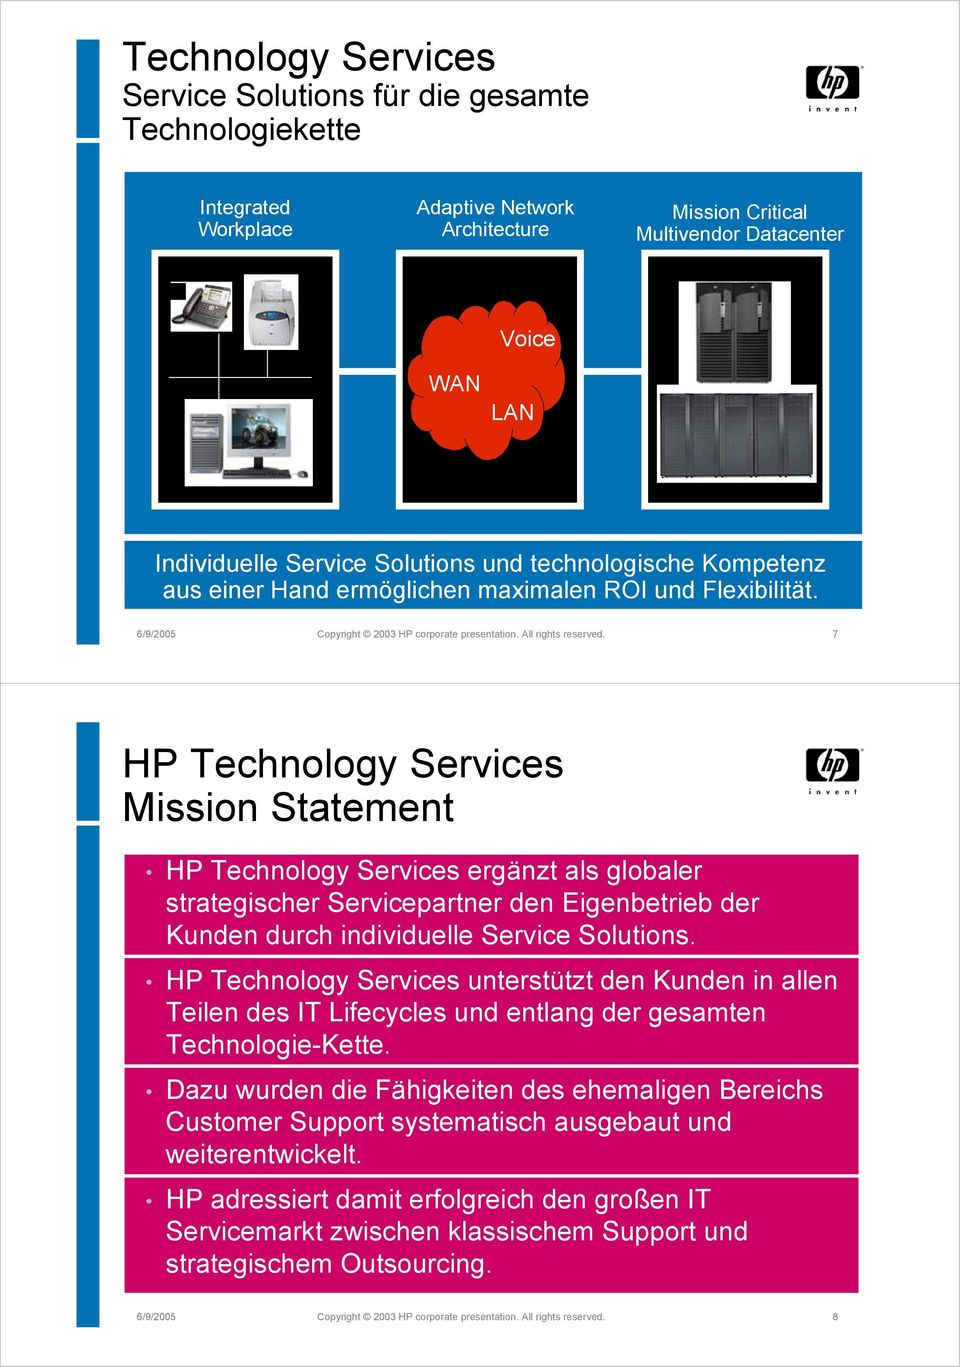 7 HP Technology Services Mission Statement HP Technology Services ergänzt als globaler strategischer Servicepartner den Eigenbetrieb der Kunden durch individuelle Service Solutions.